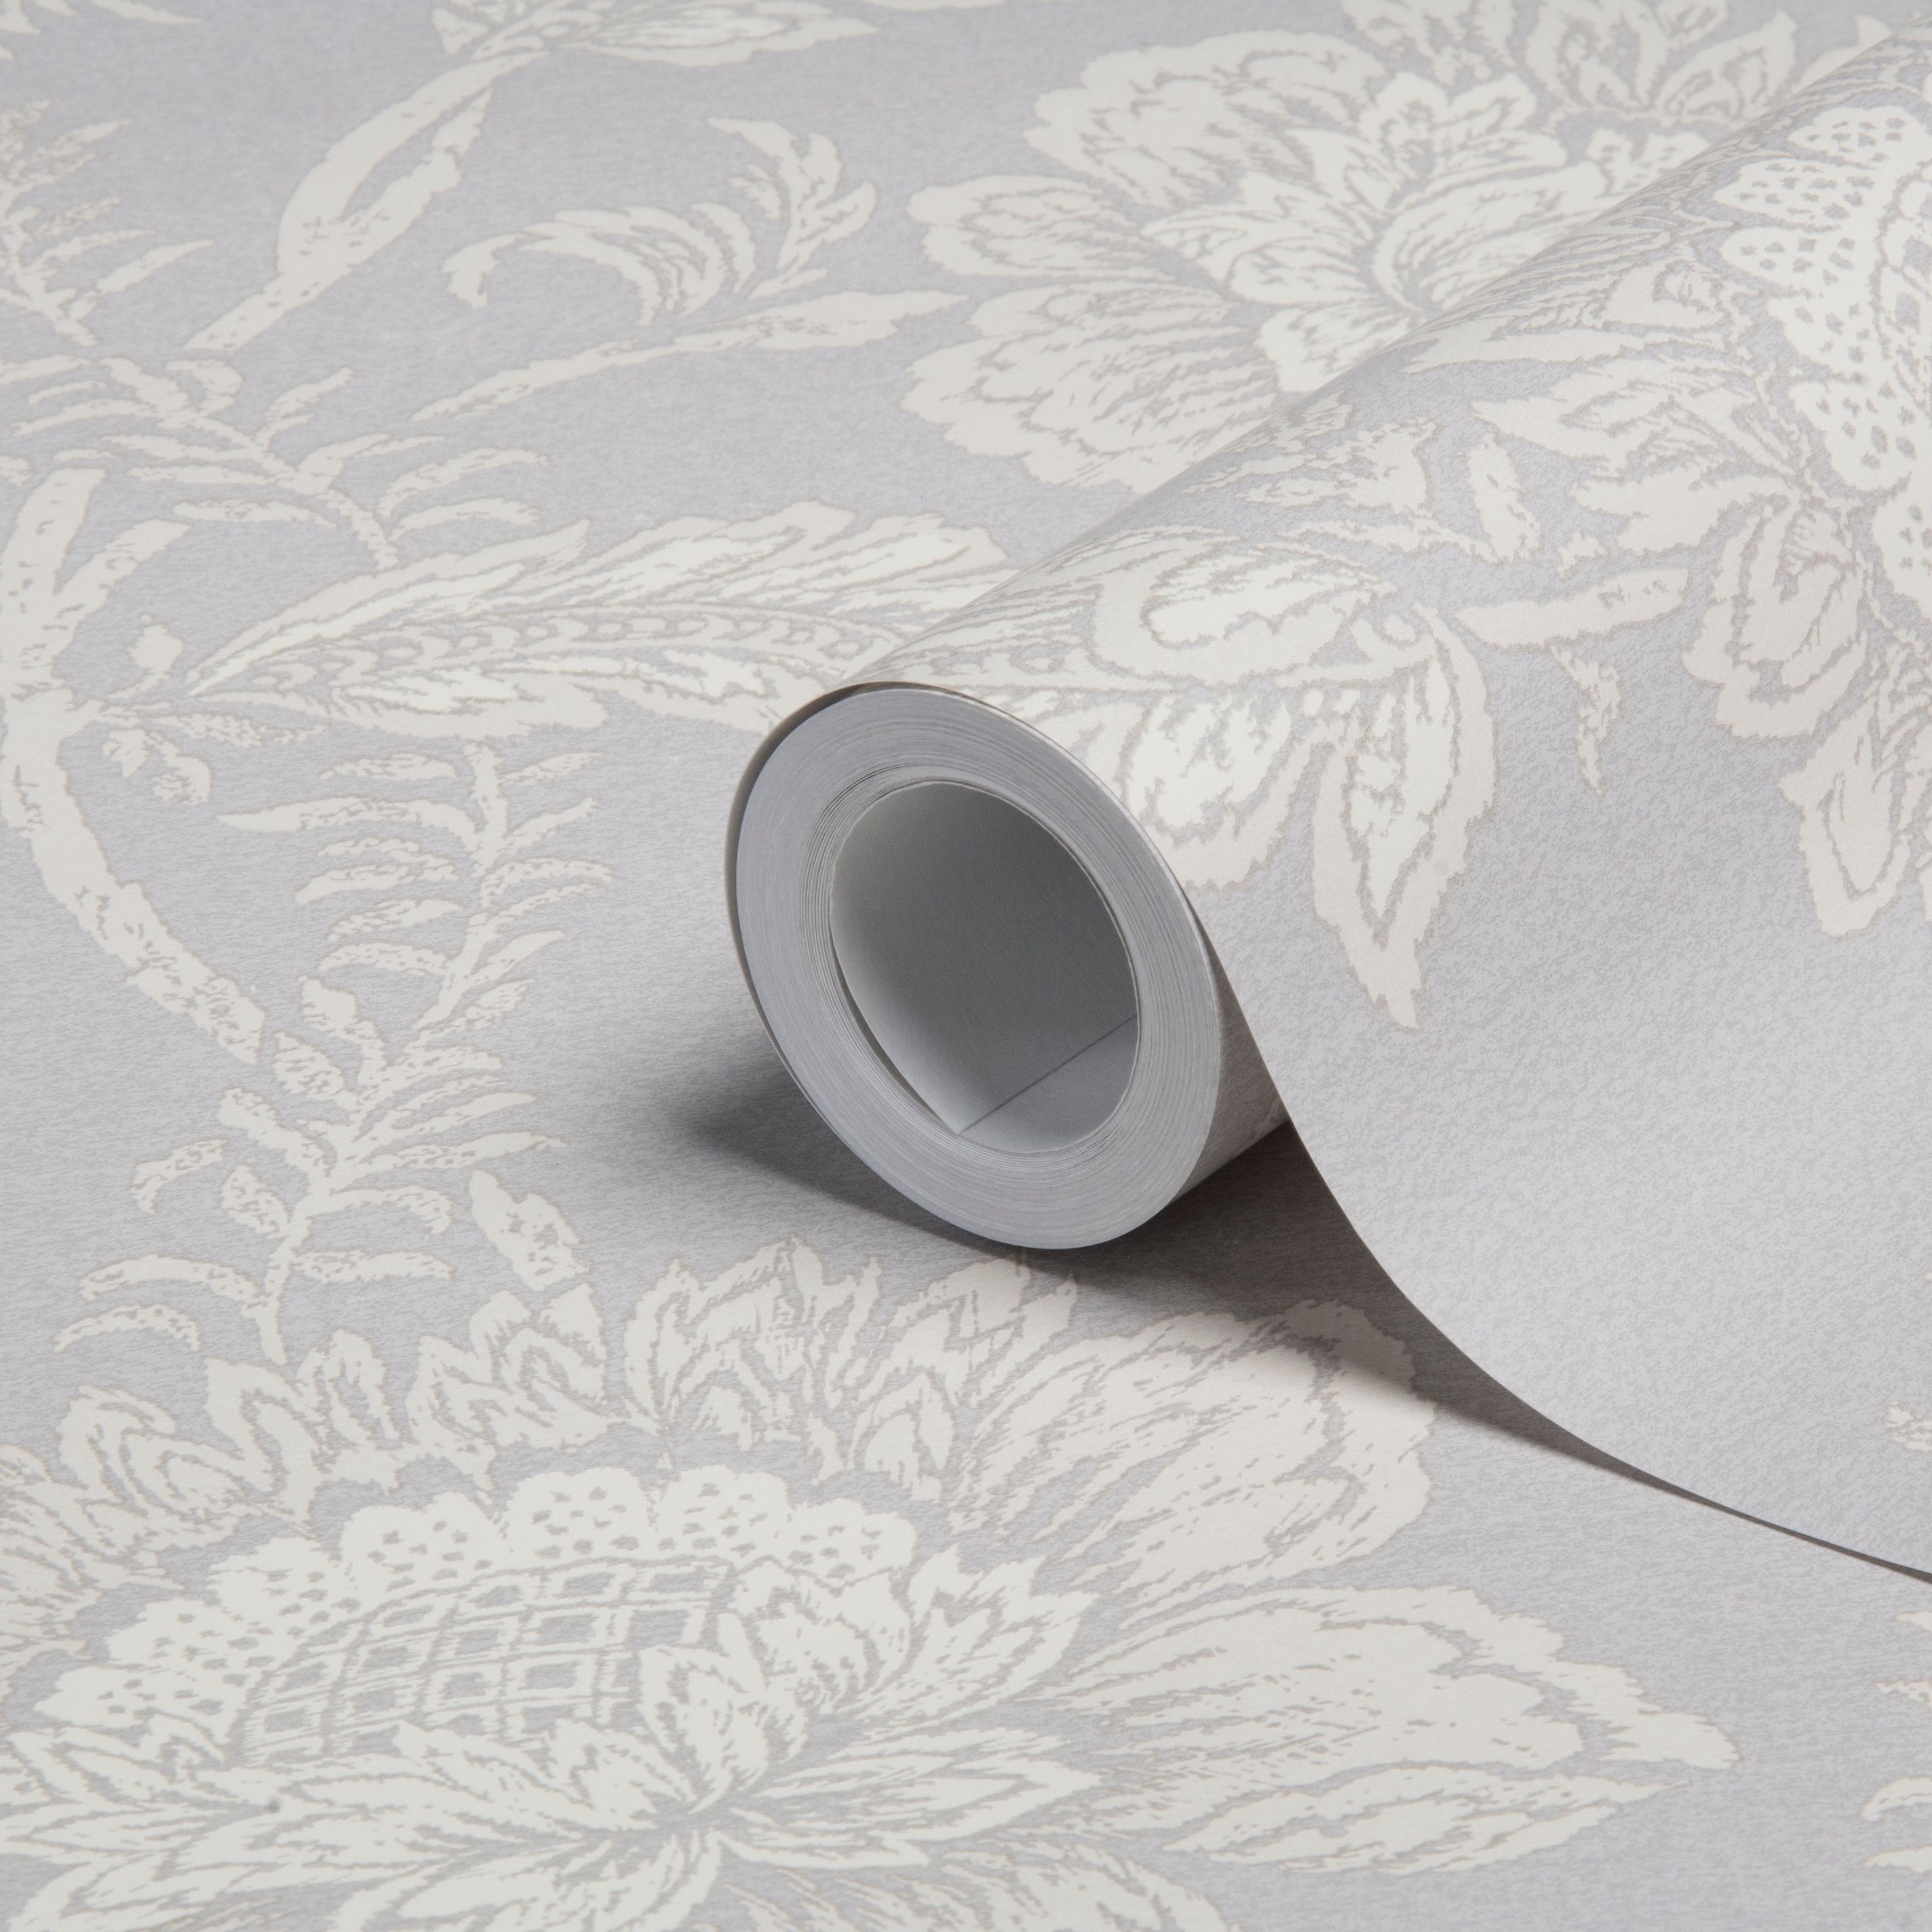 Diy supplies accessories diy at b q - Cabaletta Grey Floral Wallpaper Departments Diy At B Q